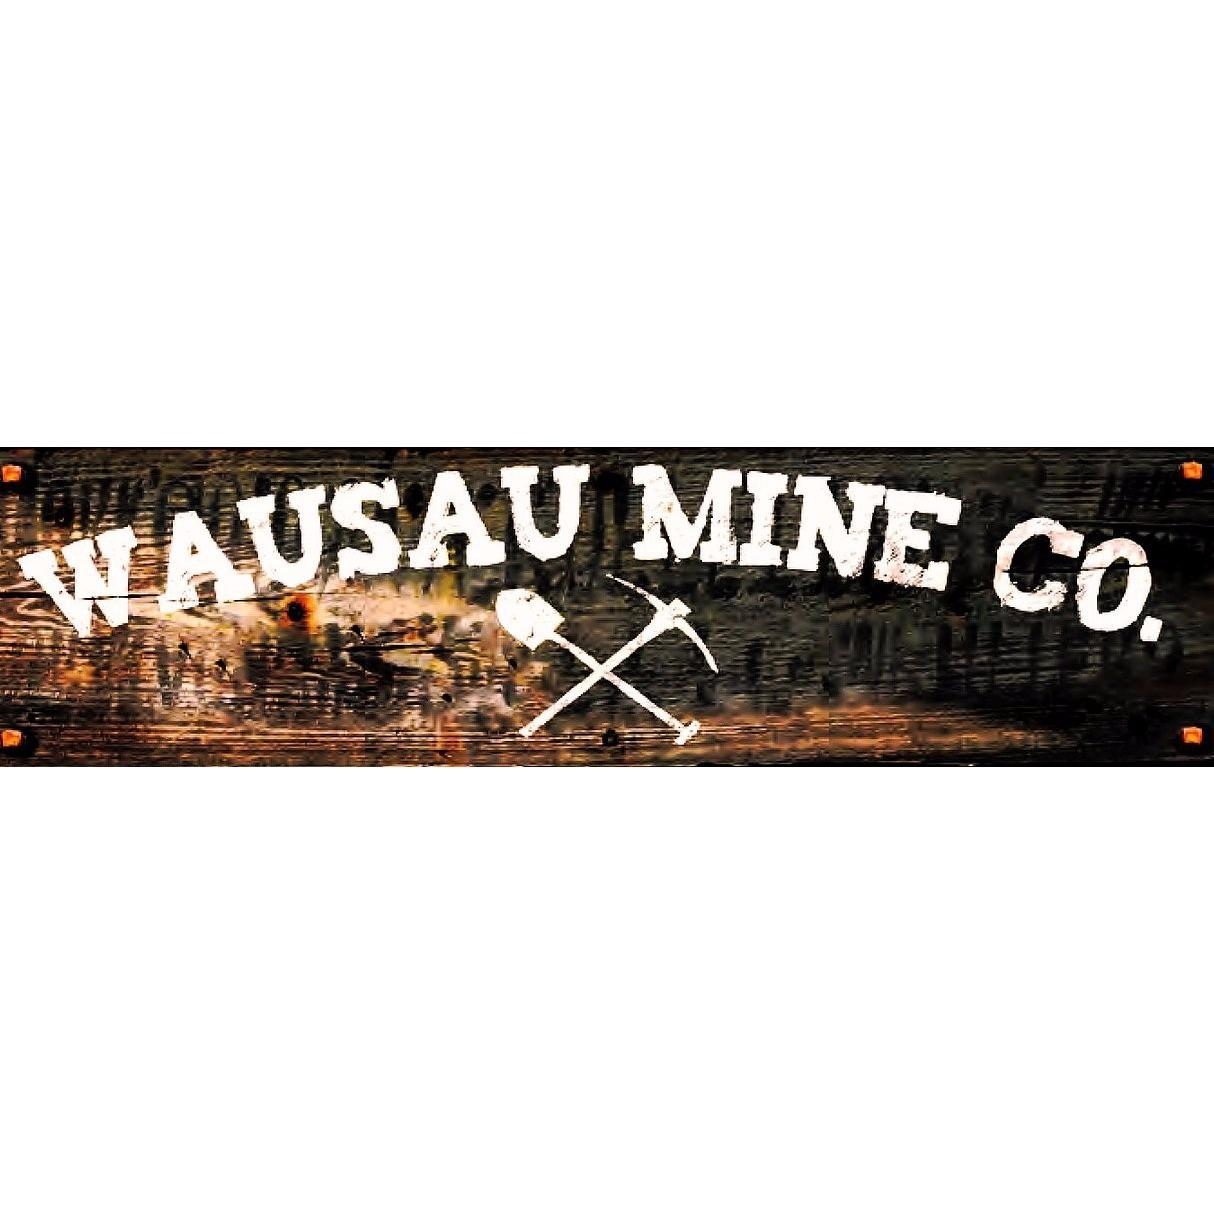 P mining co incorporated